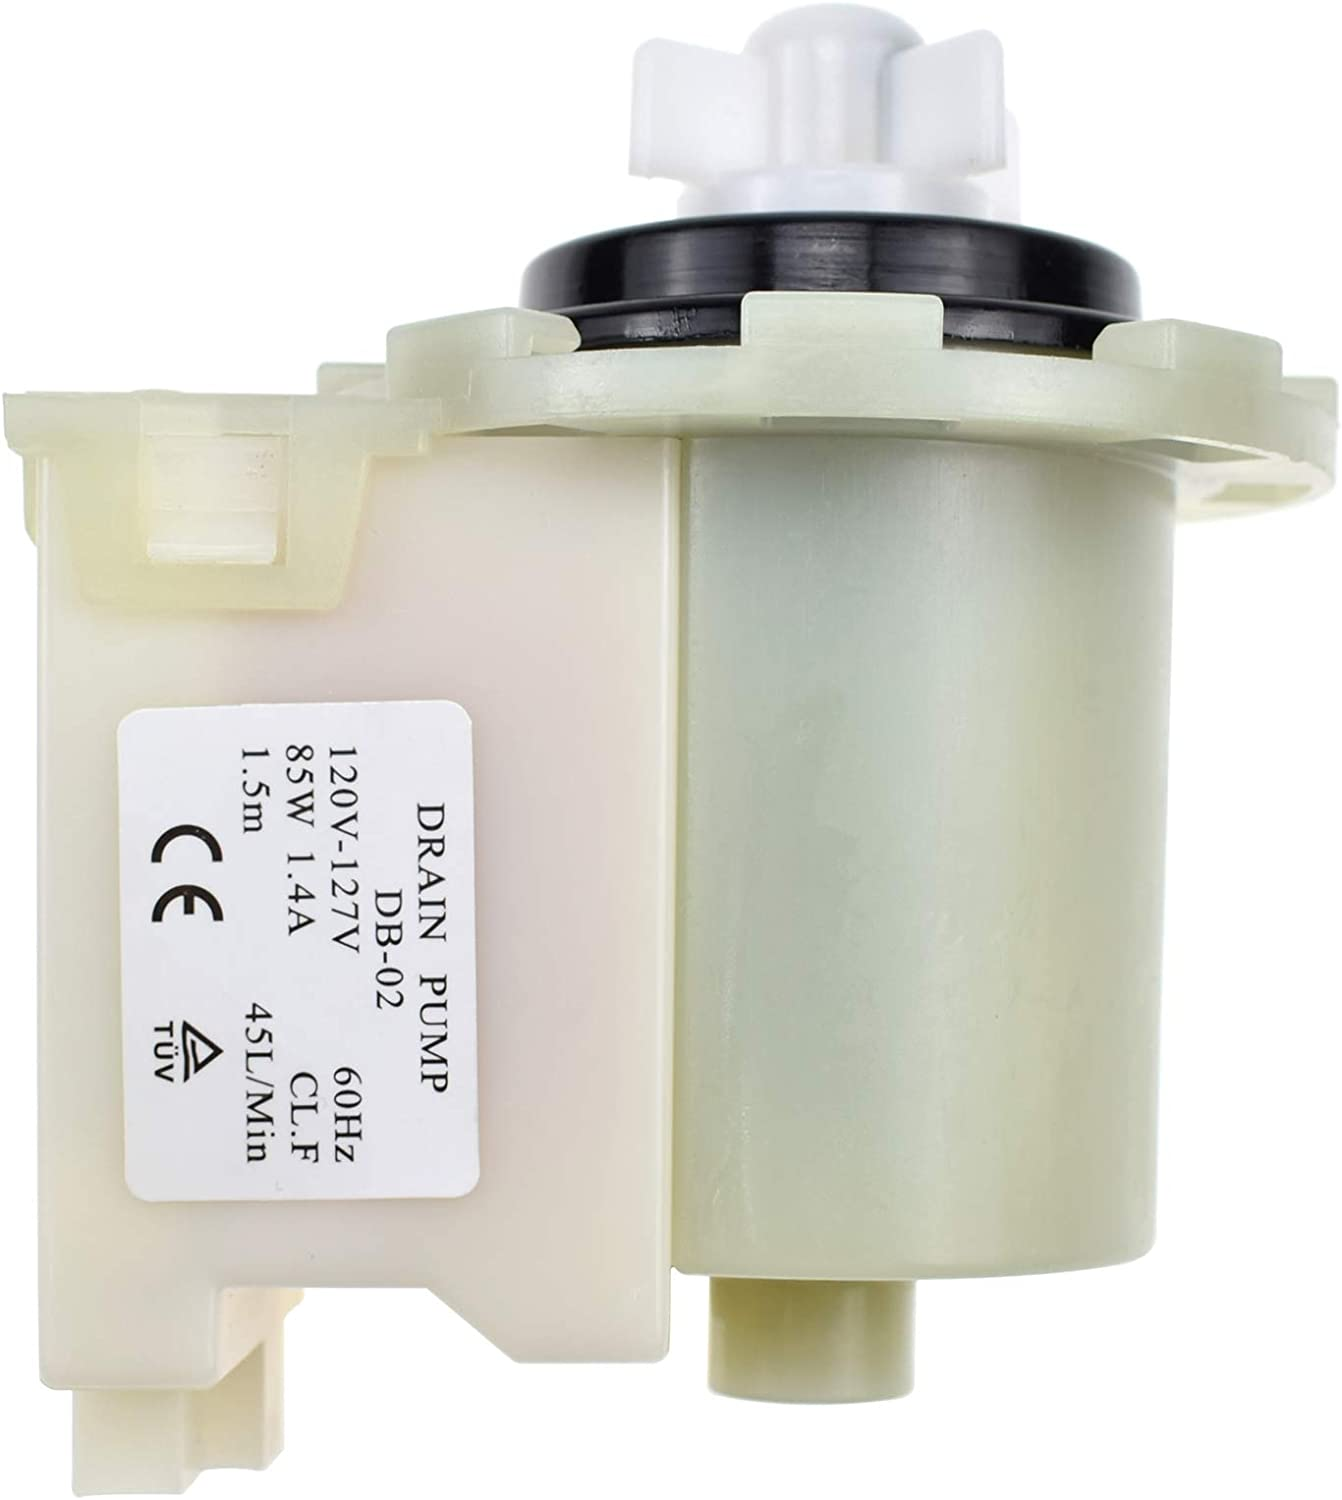 W10130913 Washer Drain Pump Replacement Compatible with Whirlpool Kenmore Washing Machine W10730972 8540024 Replacement